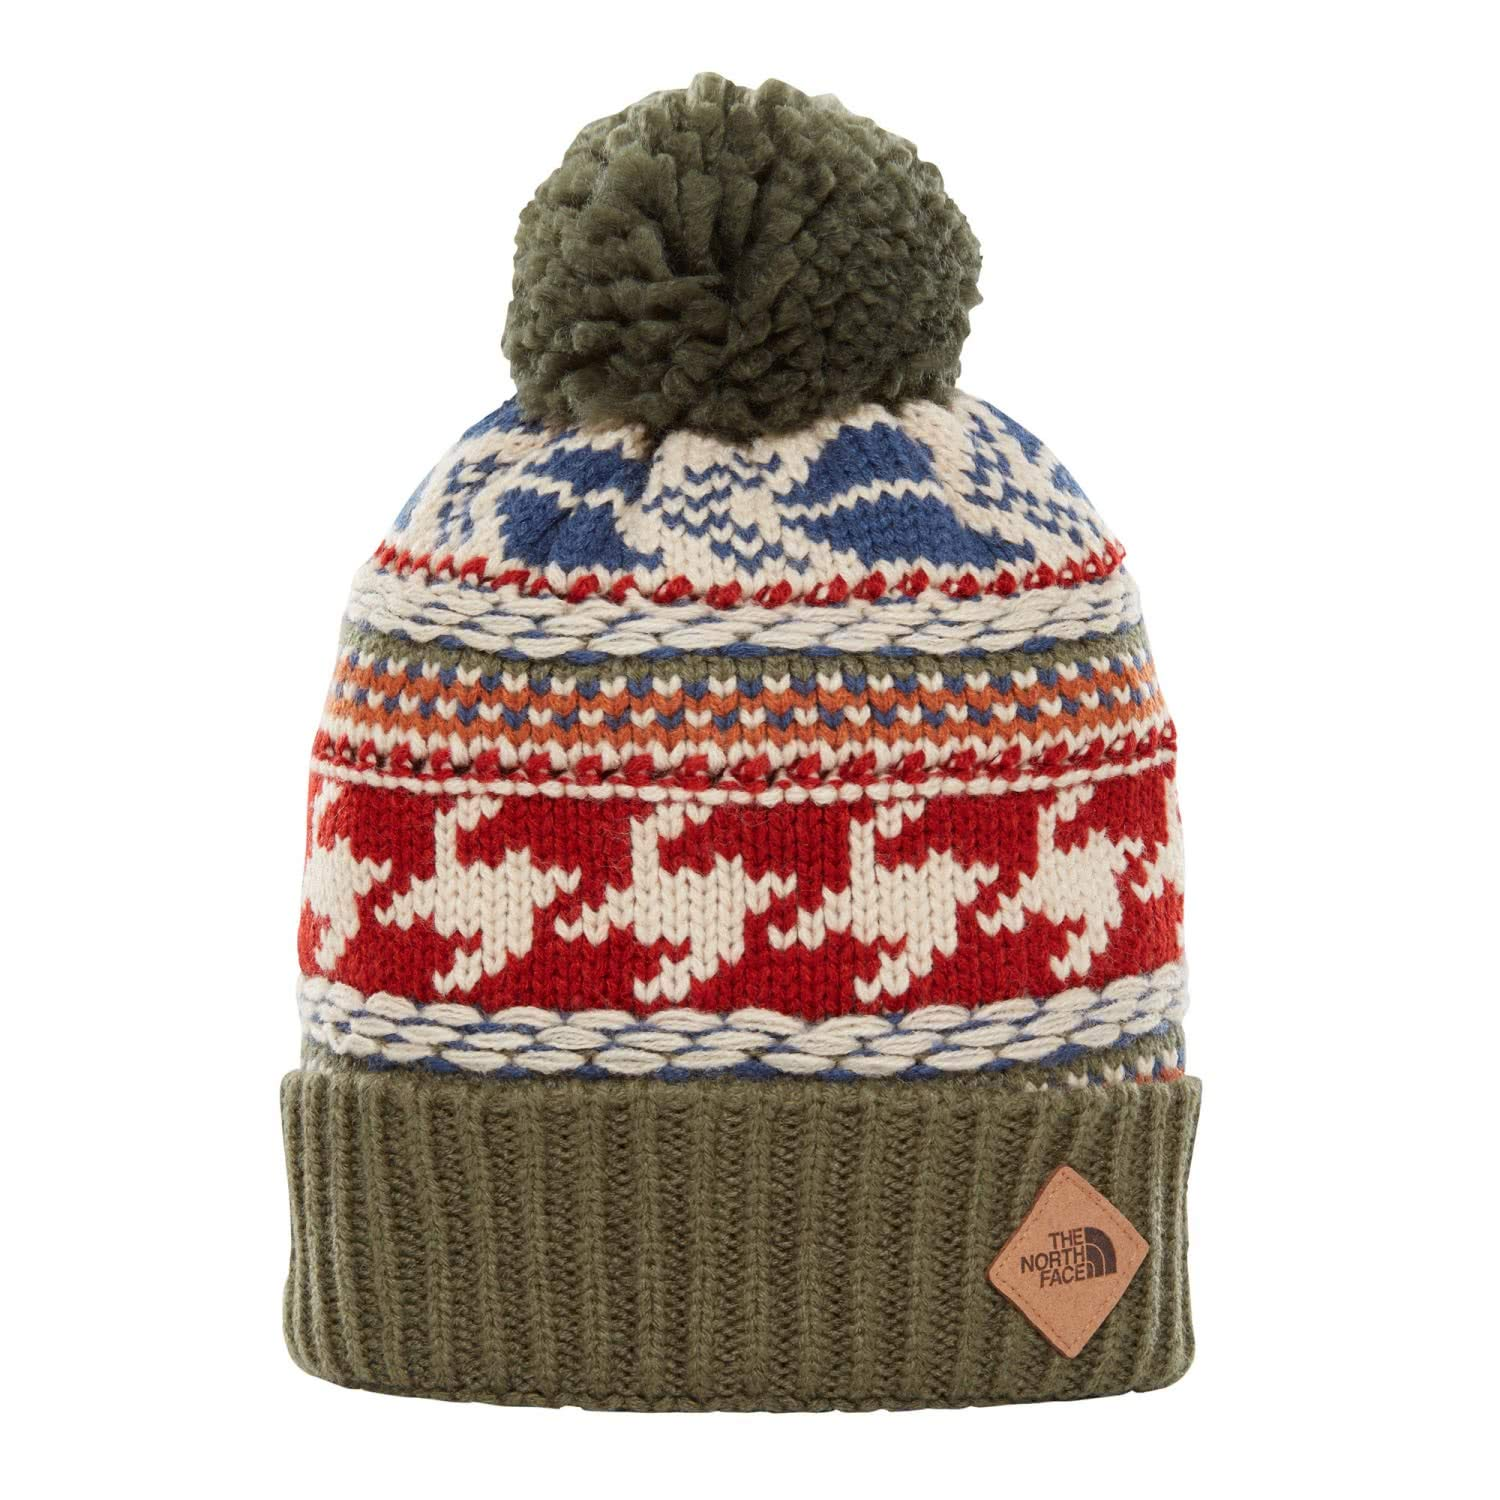 The North Face Fair Isle Beanie Four Leaf Clover Multi OS